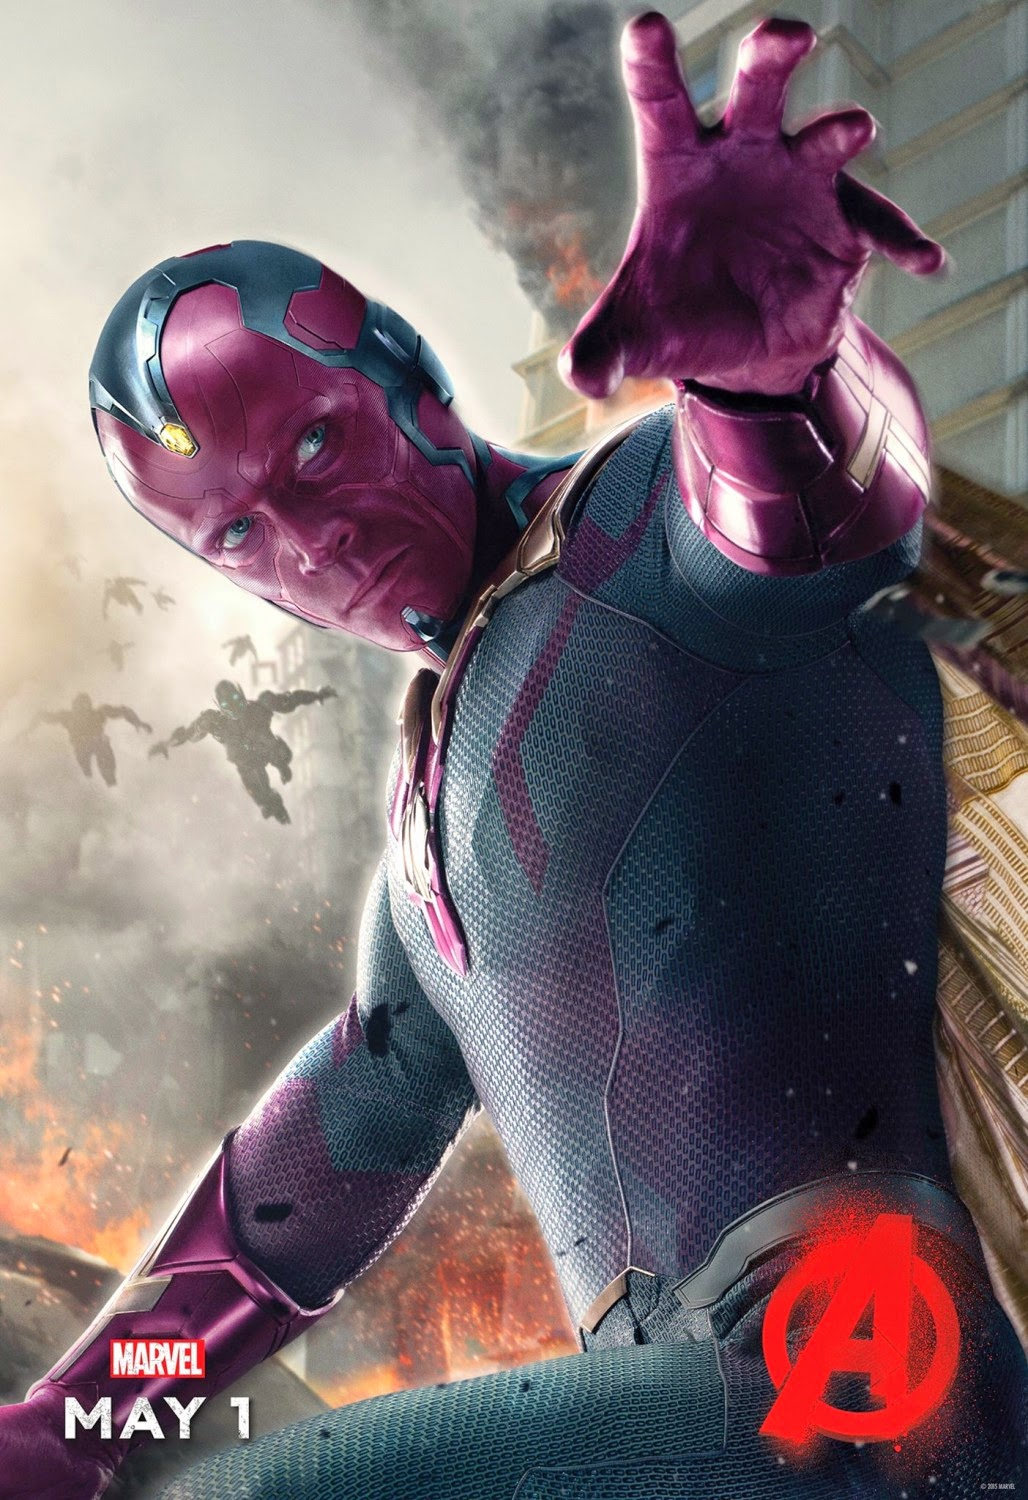 Marvel's Avengers: Age of Ultron Character Movie Poster Set - Paul Bettany as The Vision